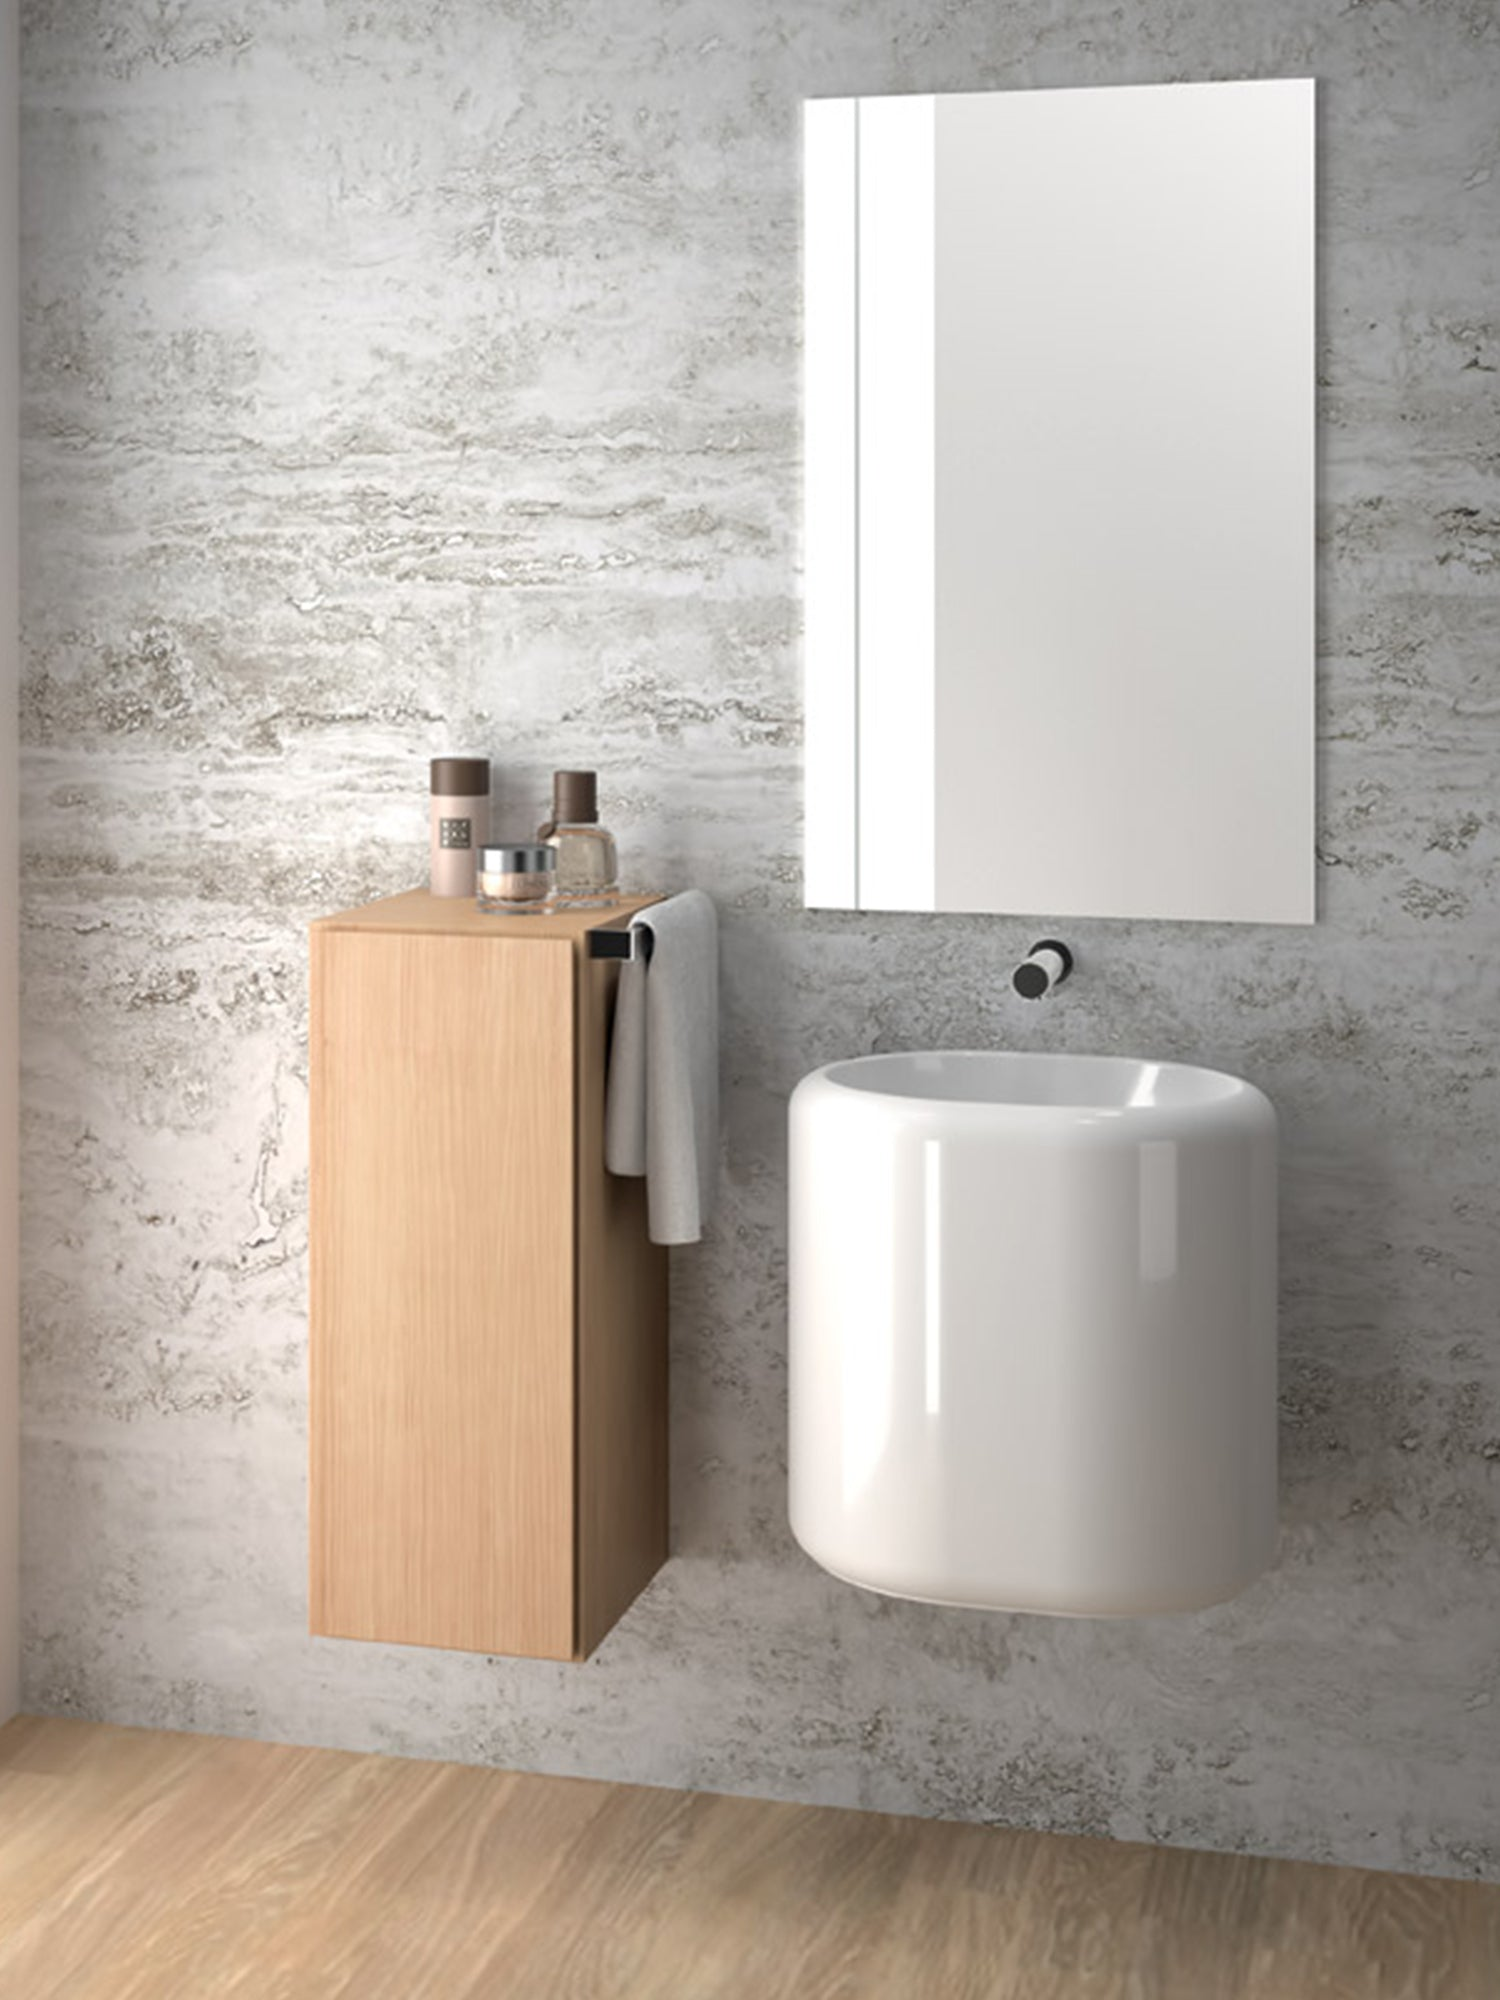 Status Wall-Mounted / Counter-top Basin #123330